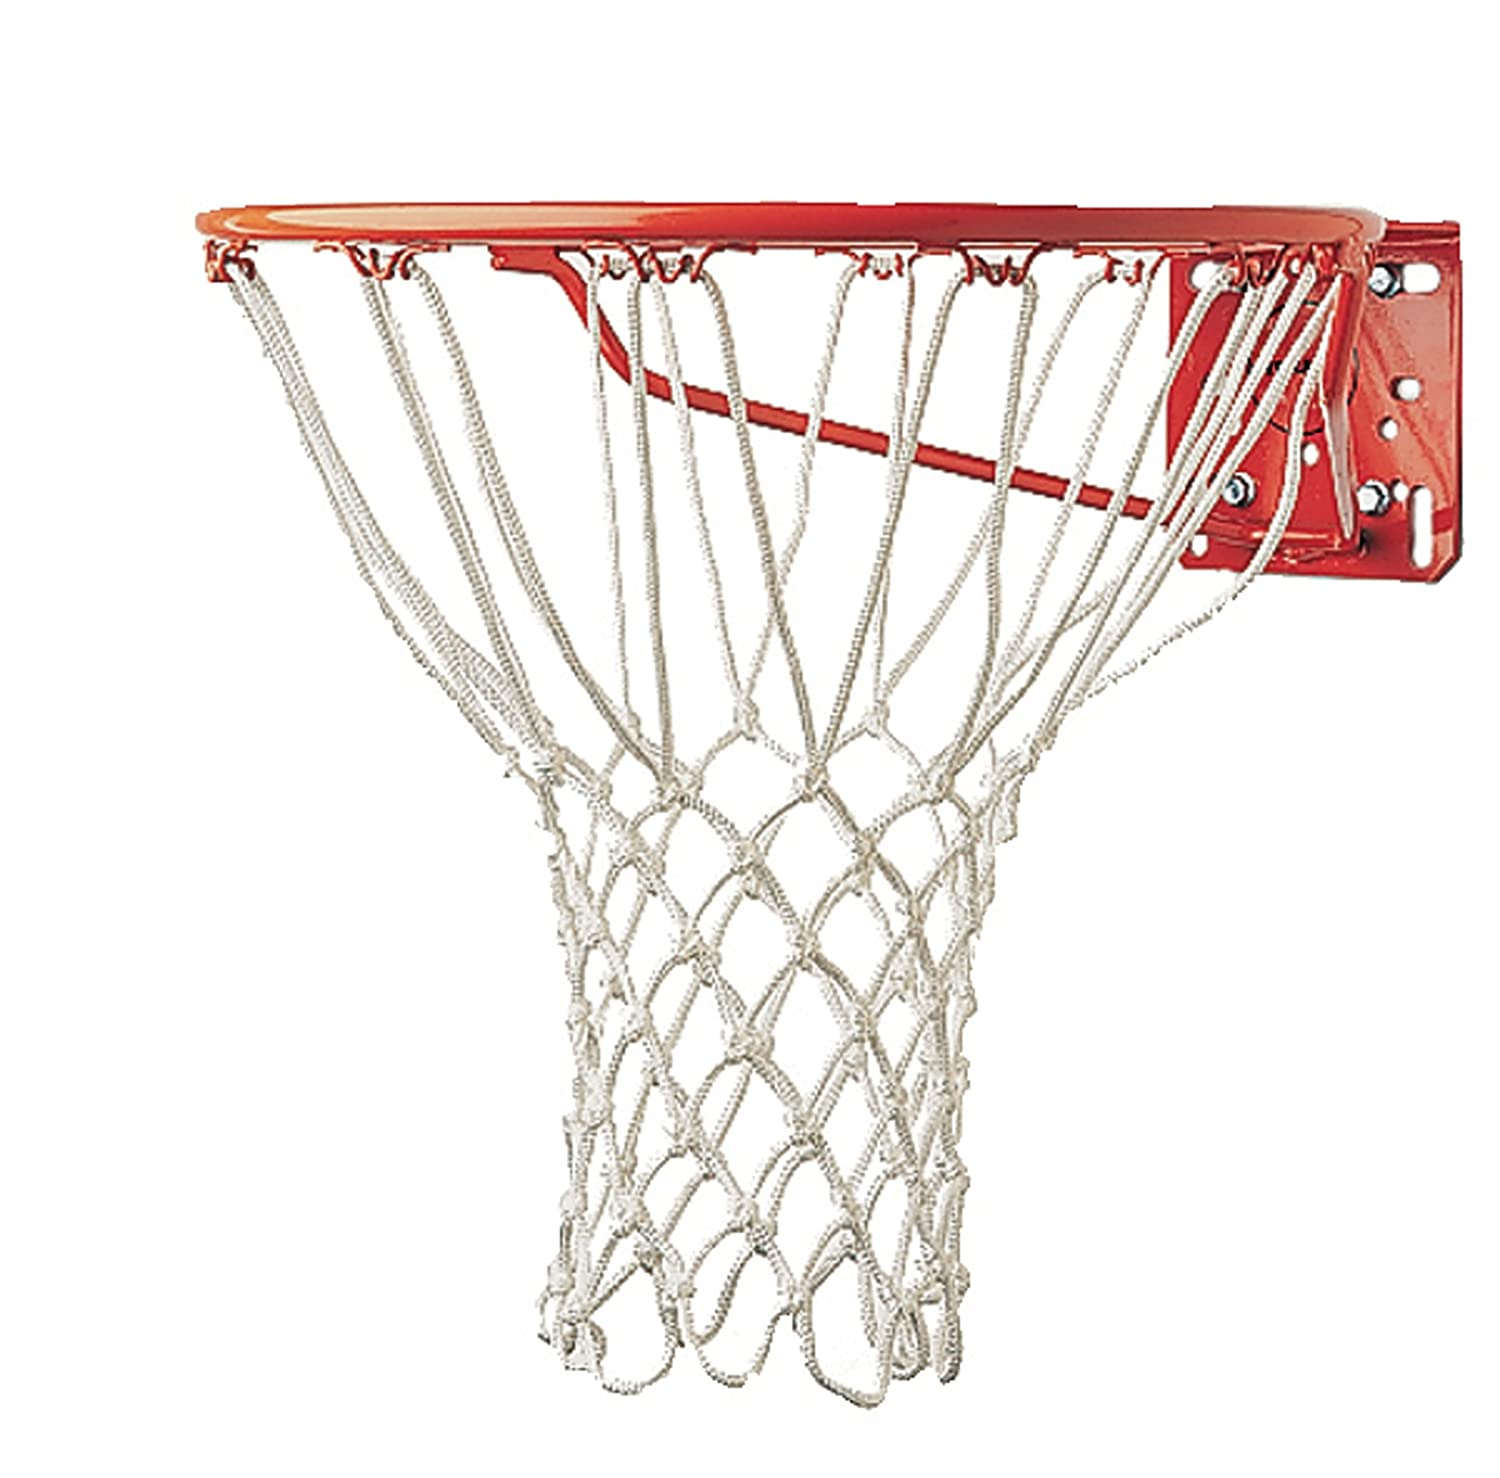 amazoncom champion sports deluxe chemically treated non whip basketball net white 5mm model 409 sports outdoors